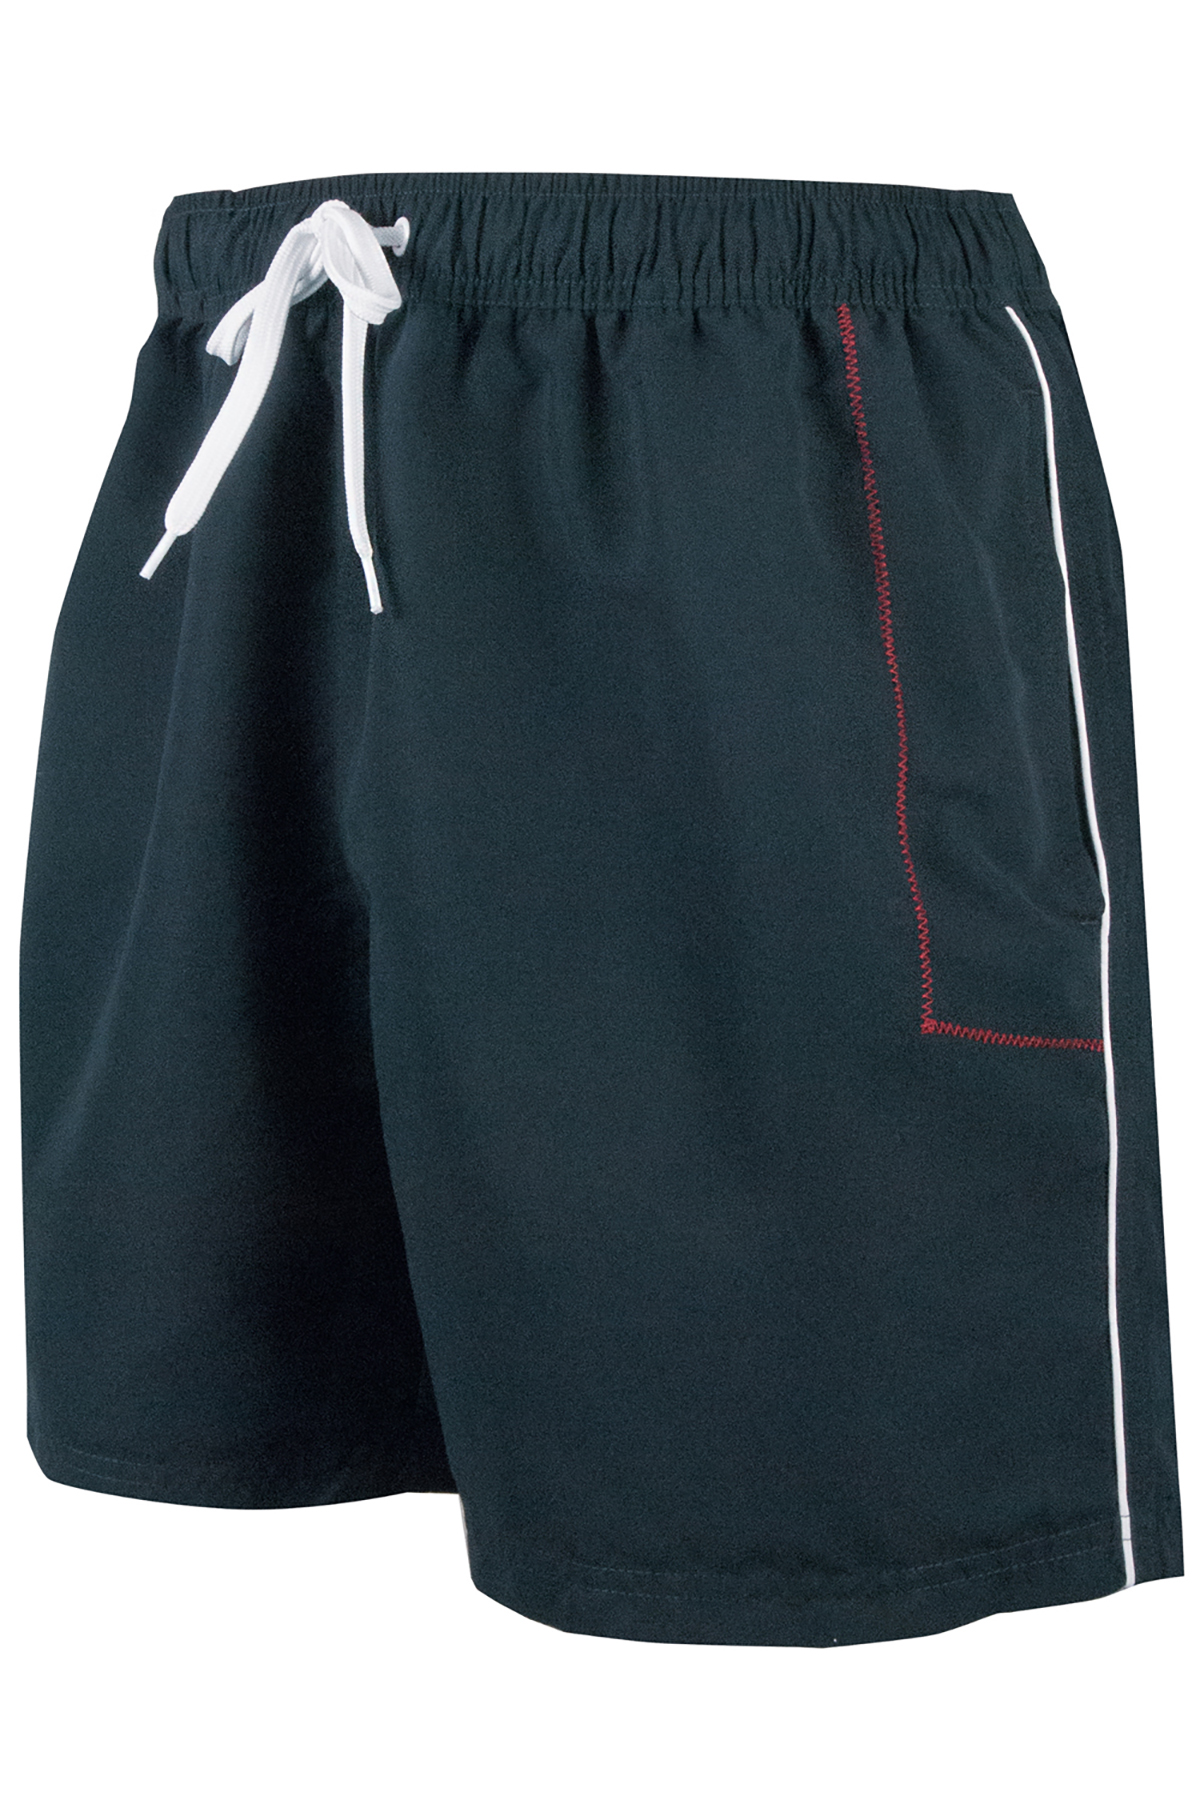 Men's Swim Shorts 74822